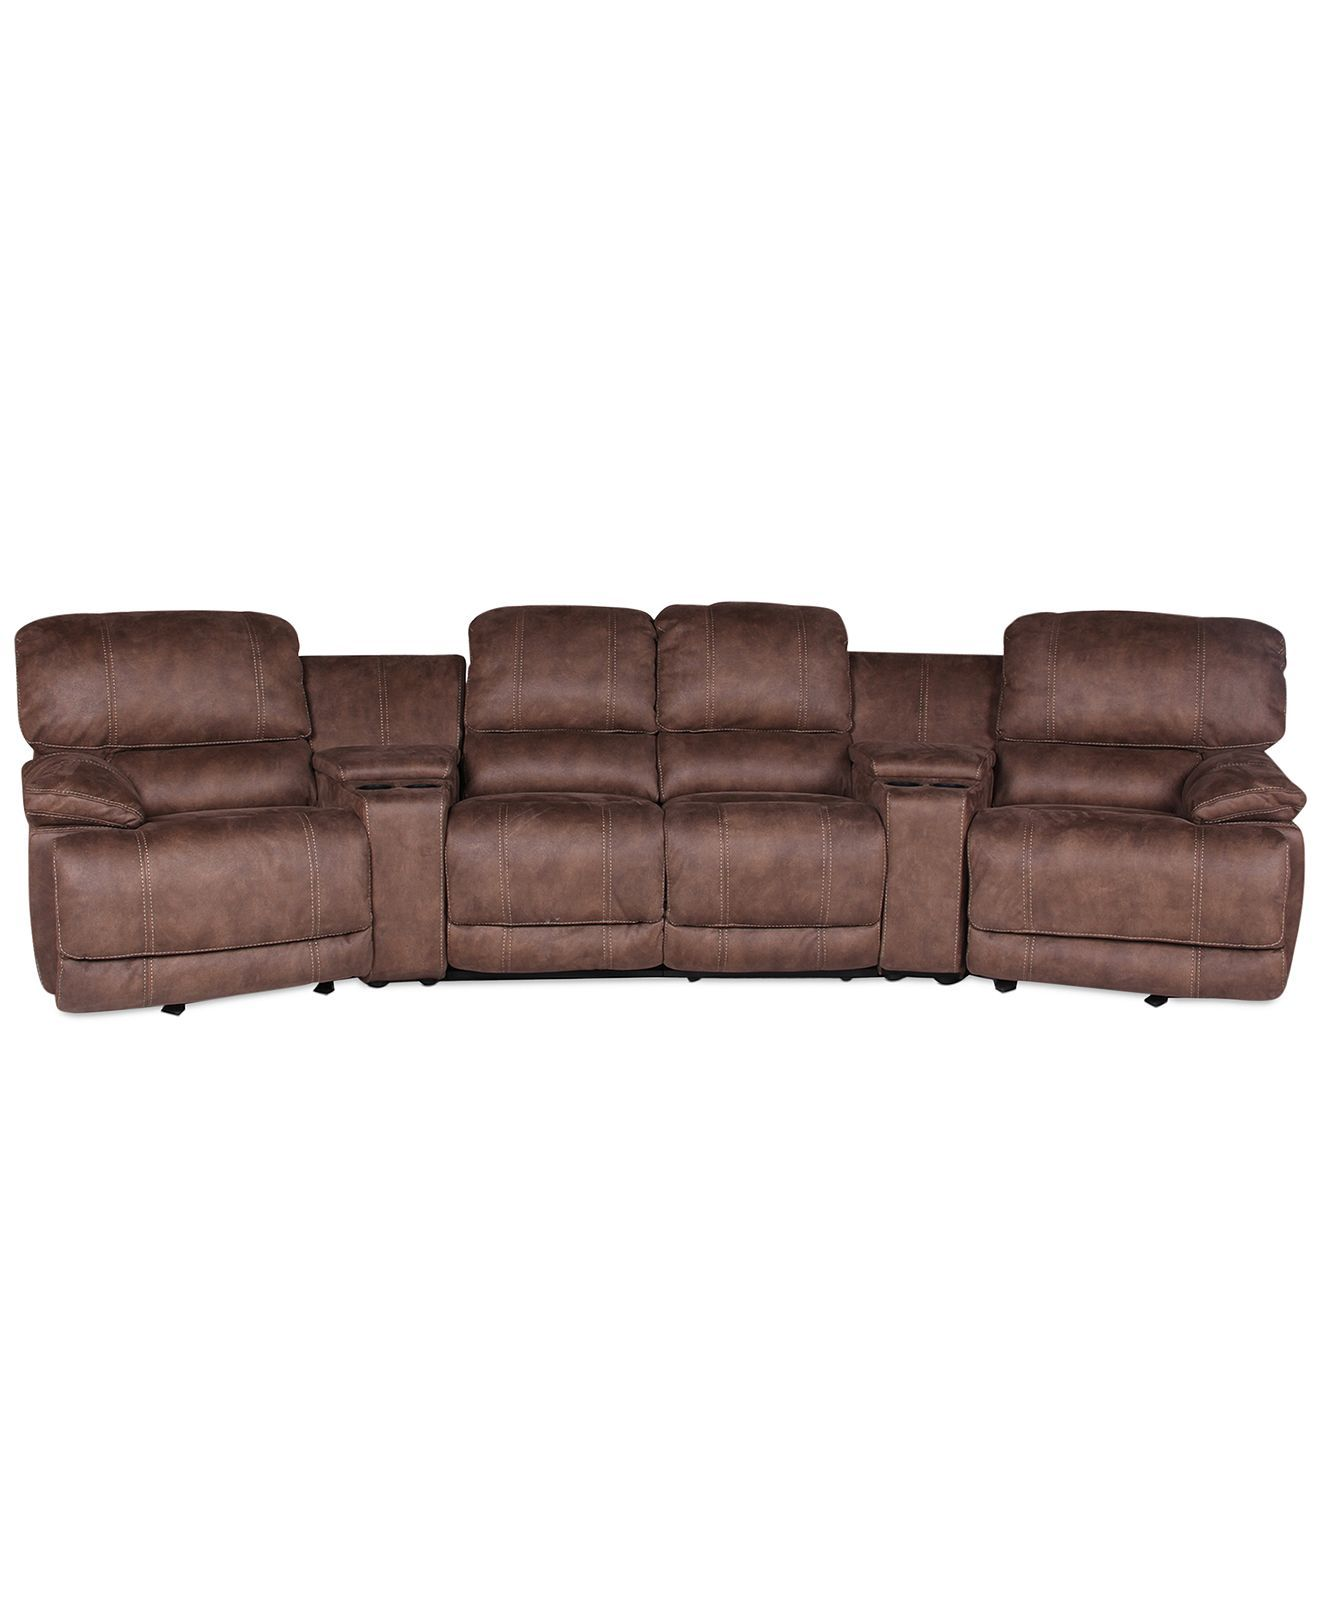 Home Theatre Sectional Sofas Electric Recliner Sofa Dubai Jedd Fabric 6 Piece